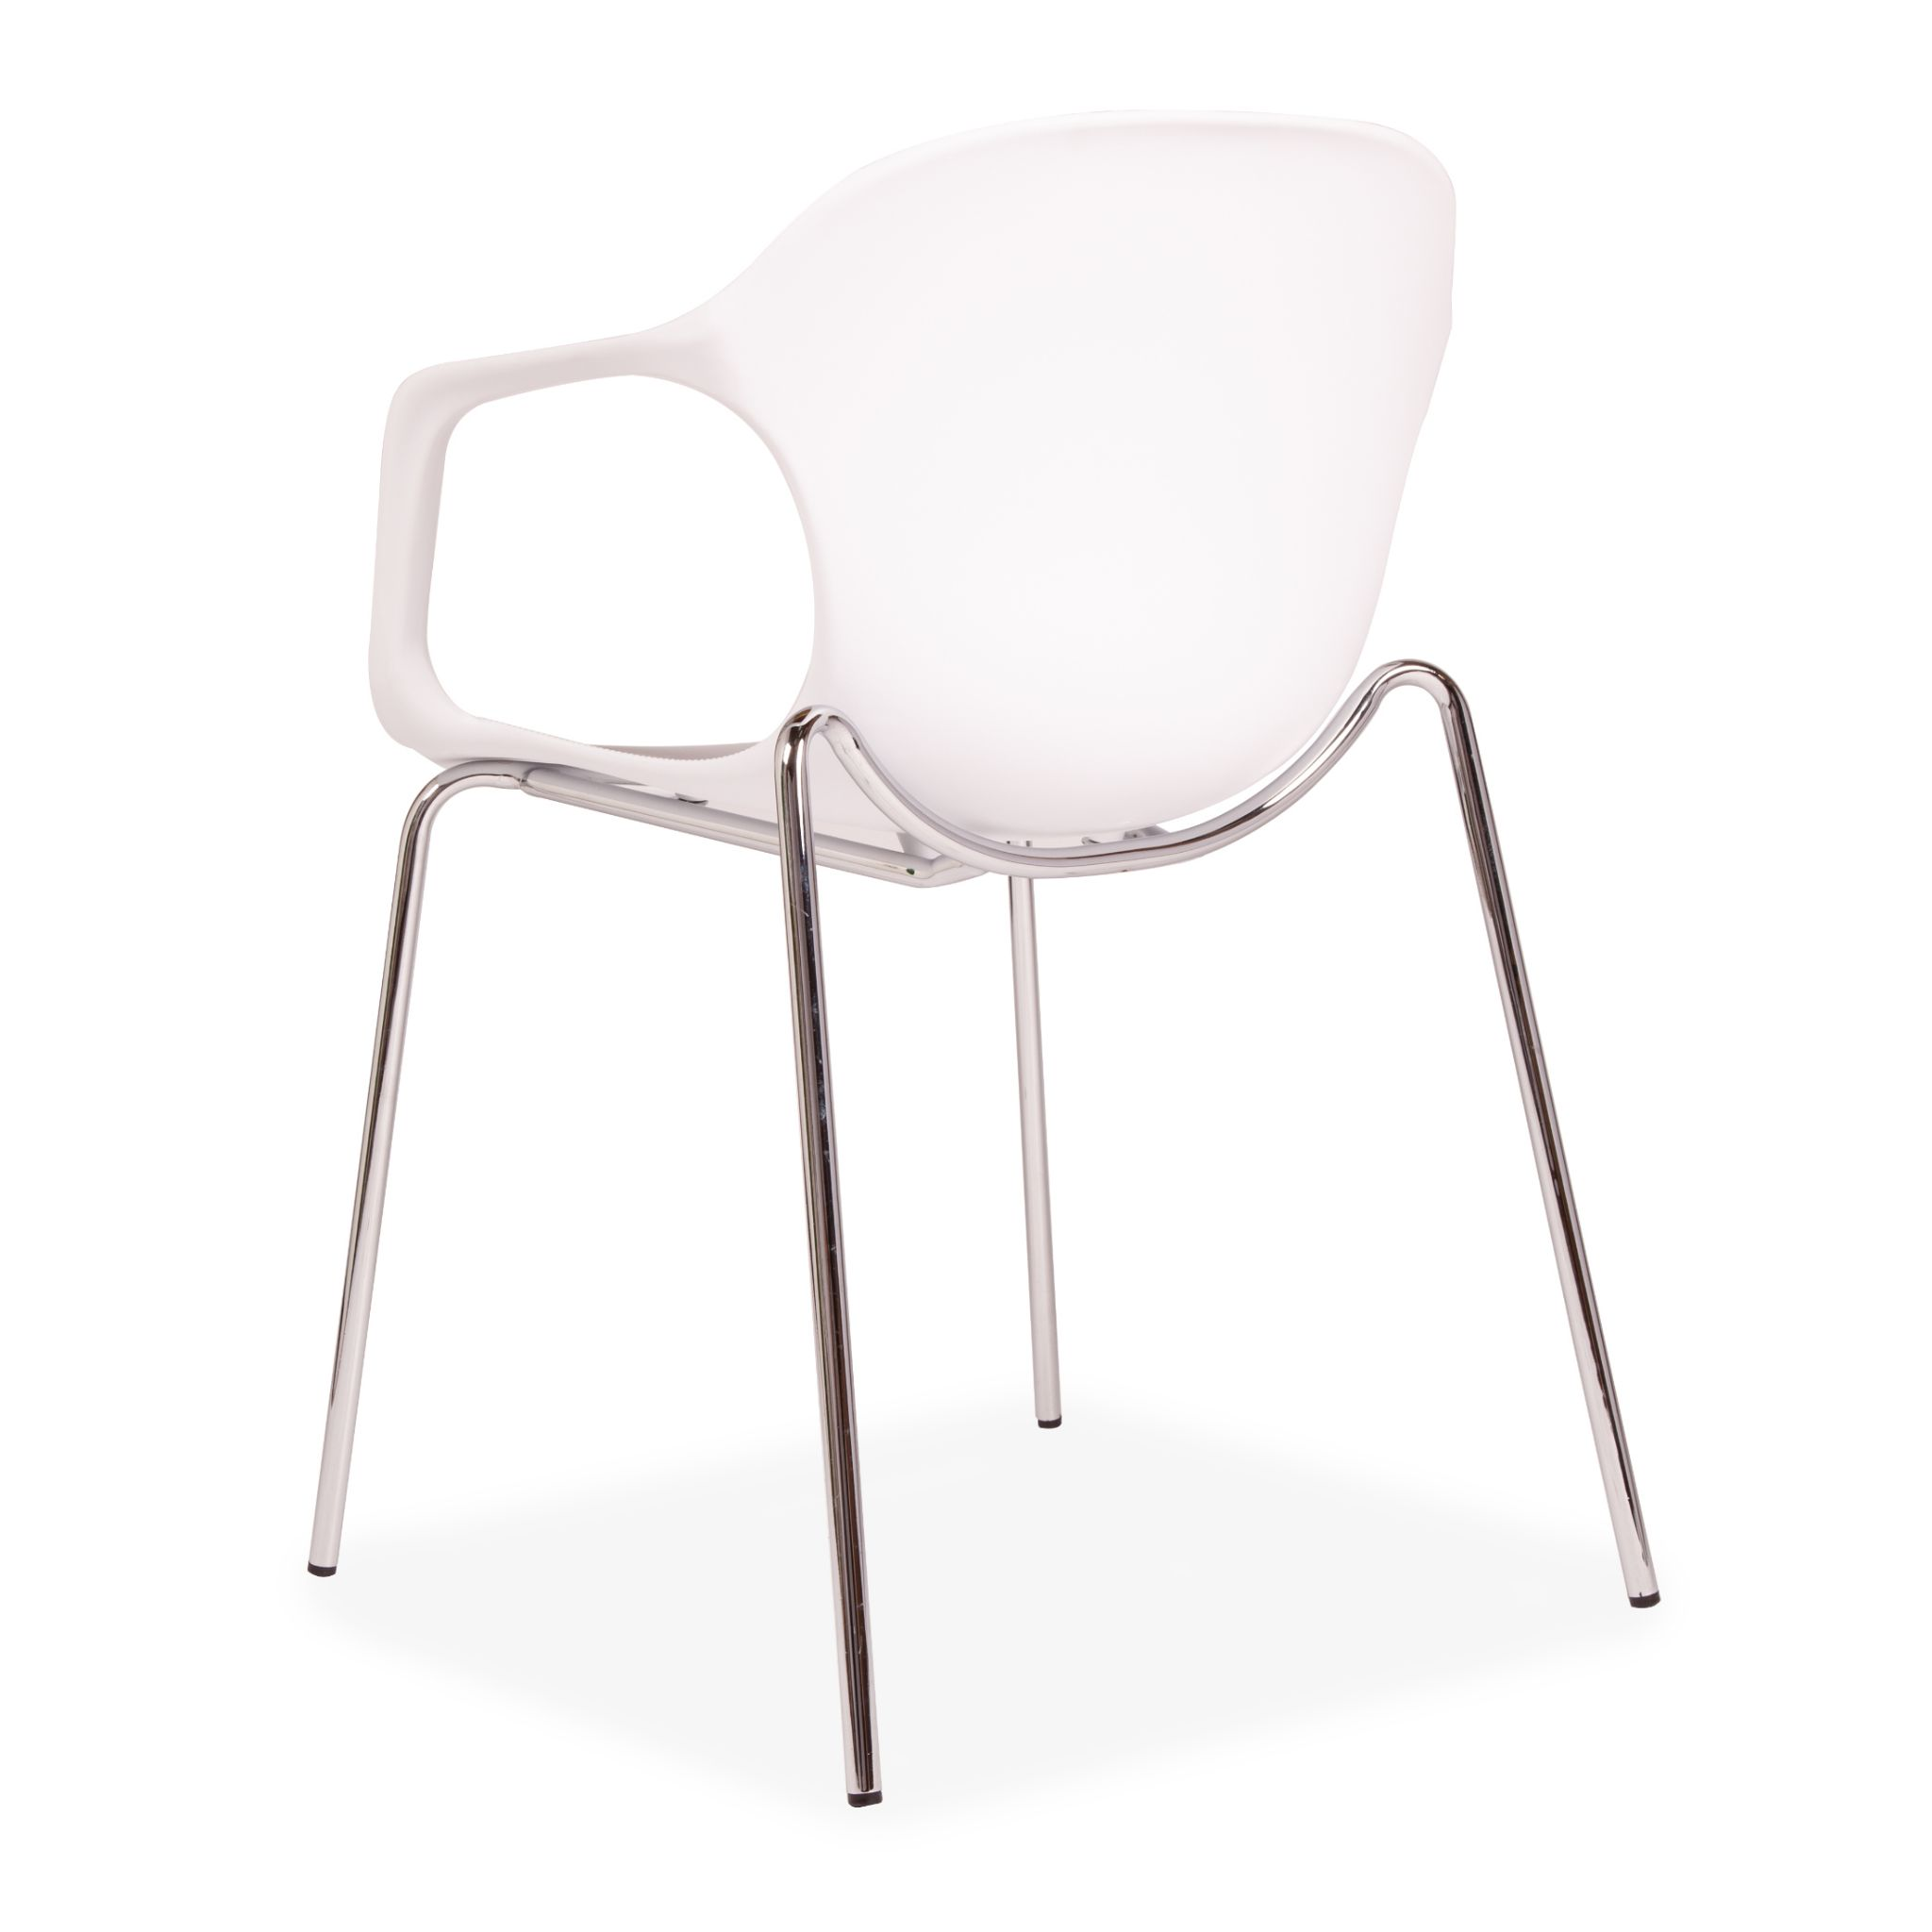 X2 Or X6 White Plastic Stackable Dining Chair With Metal Chrome Legs